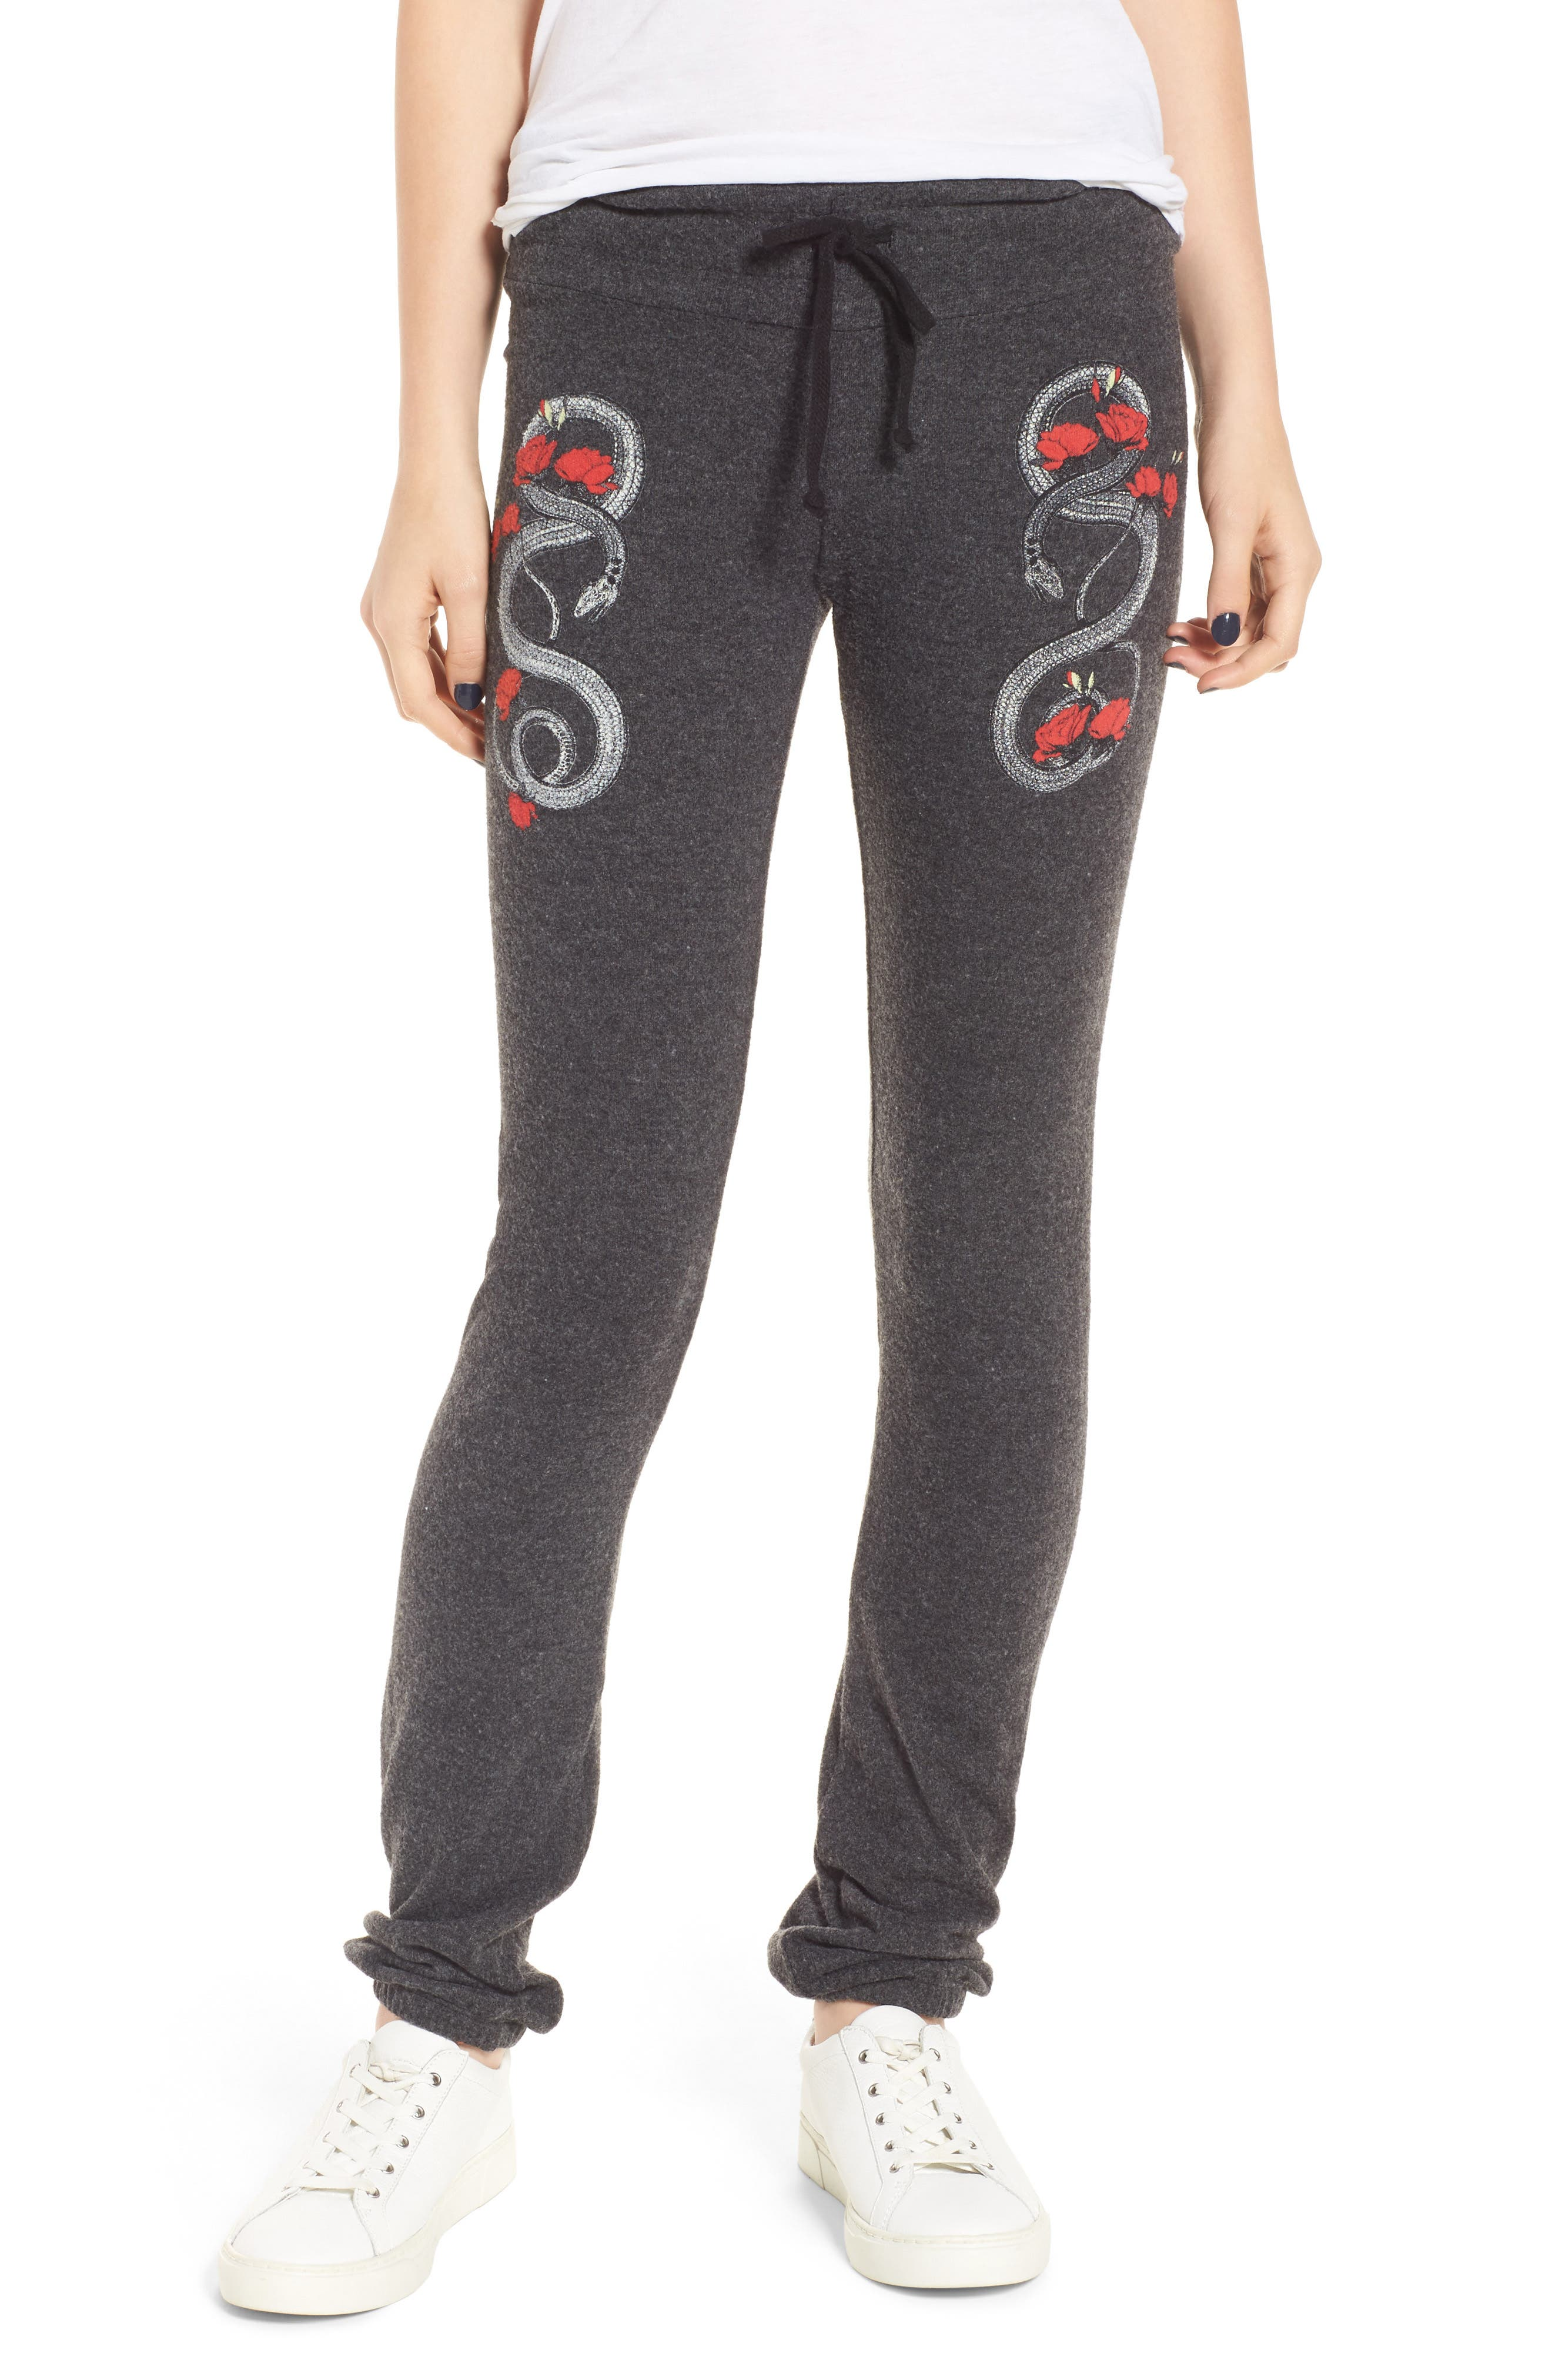 Red Snakes Sweatpants,                         Main,                         color, 002